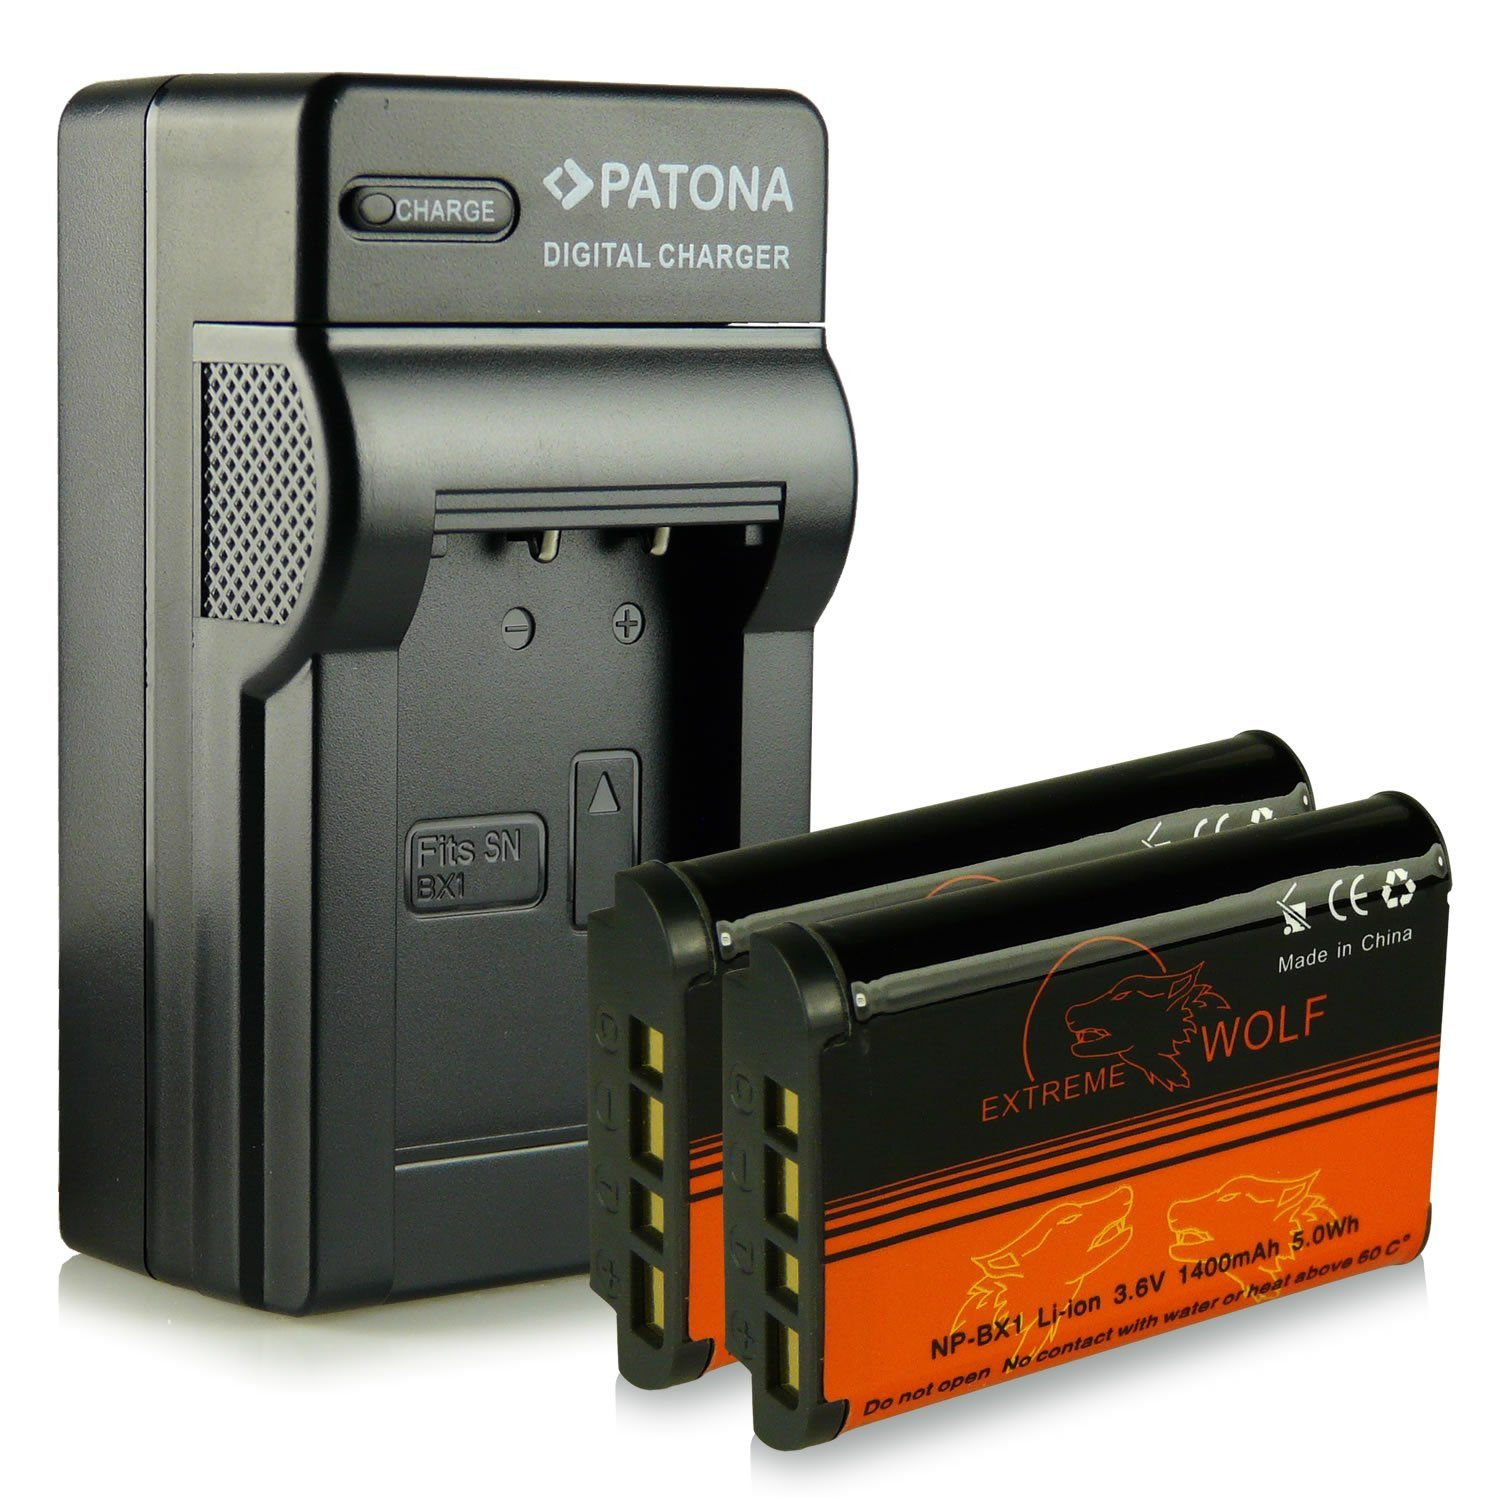 Bundle - Charger + 2x Battery NP-BX1 with Infochip · 100% compatible with Sony CyberShot DSC-HX50 / HX50V | DSC-HX300 | DSC-RX1 / DSC-RX1R | DSC-RX100 / DSC-RX100 II | DSC-WX300 | HDR-AS15 | HDR-GW66 | HDR-GWP88